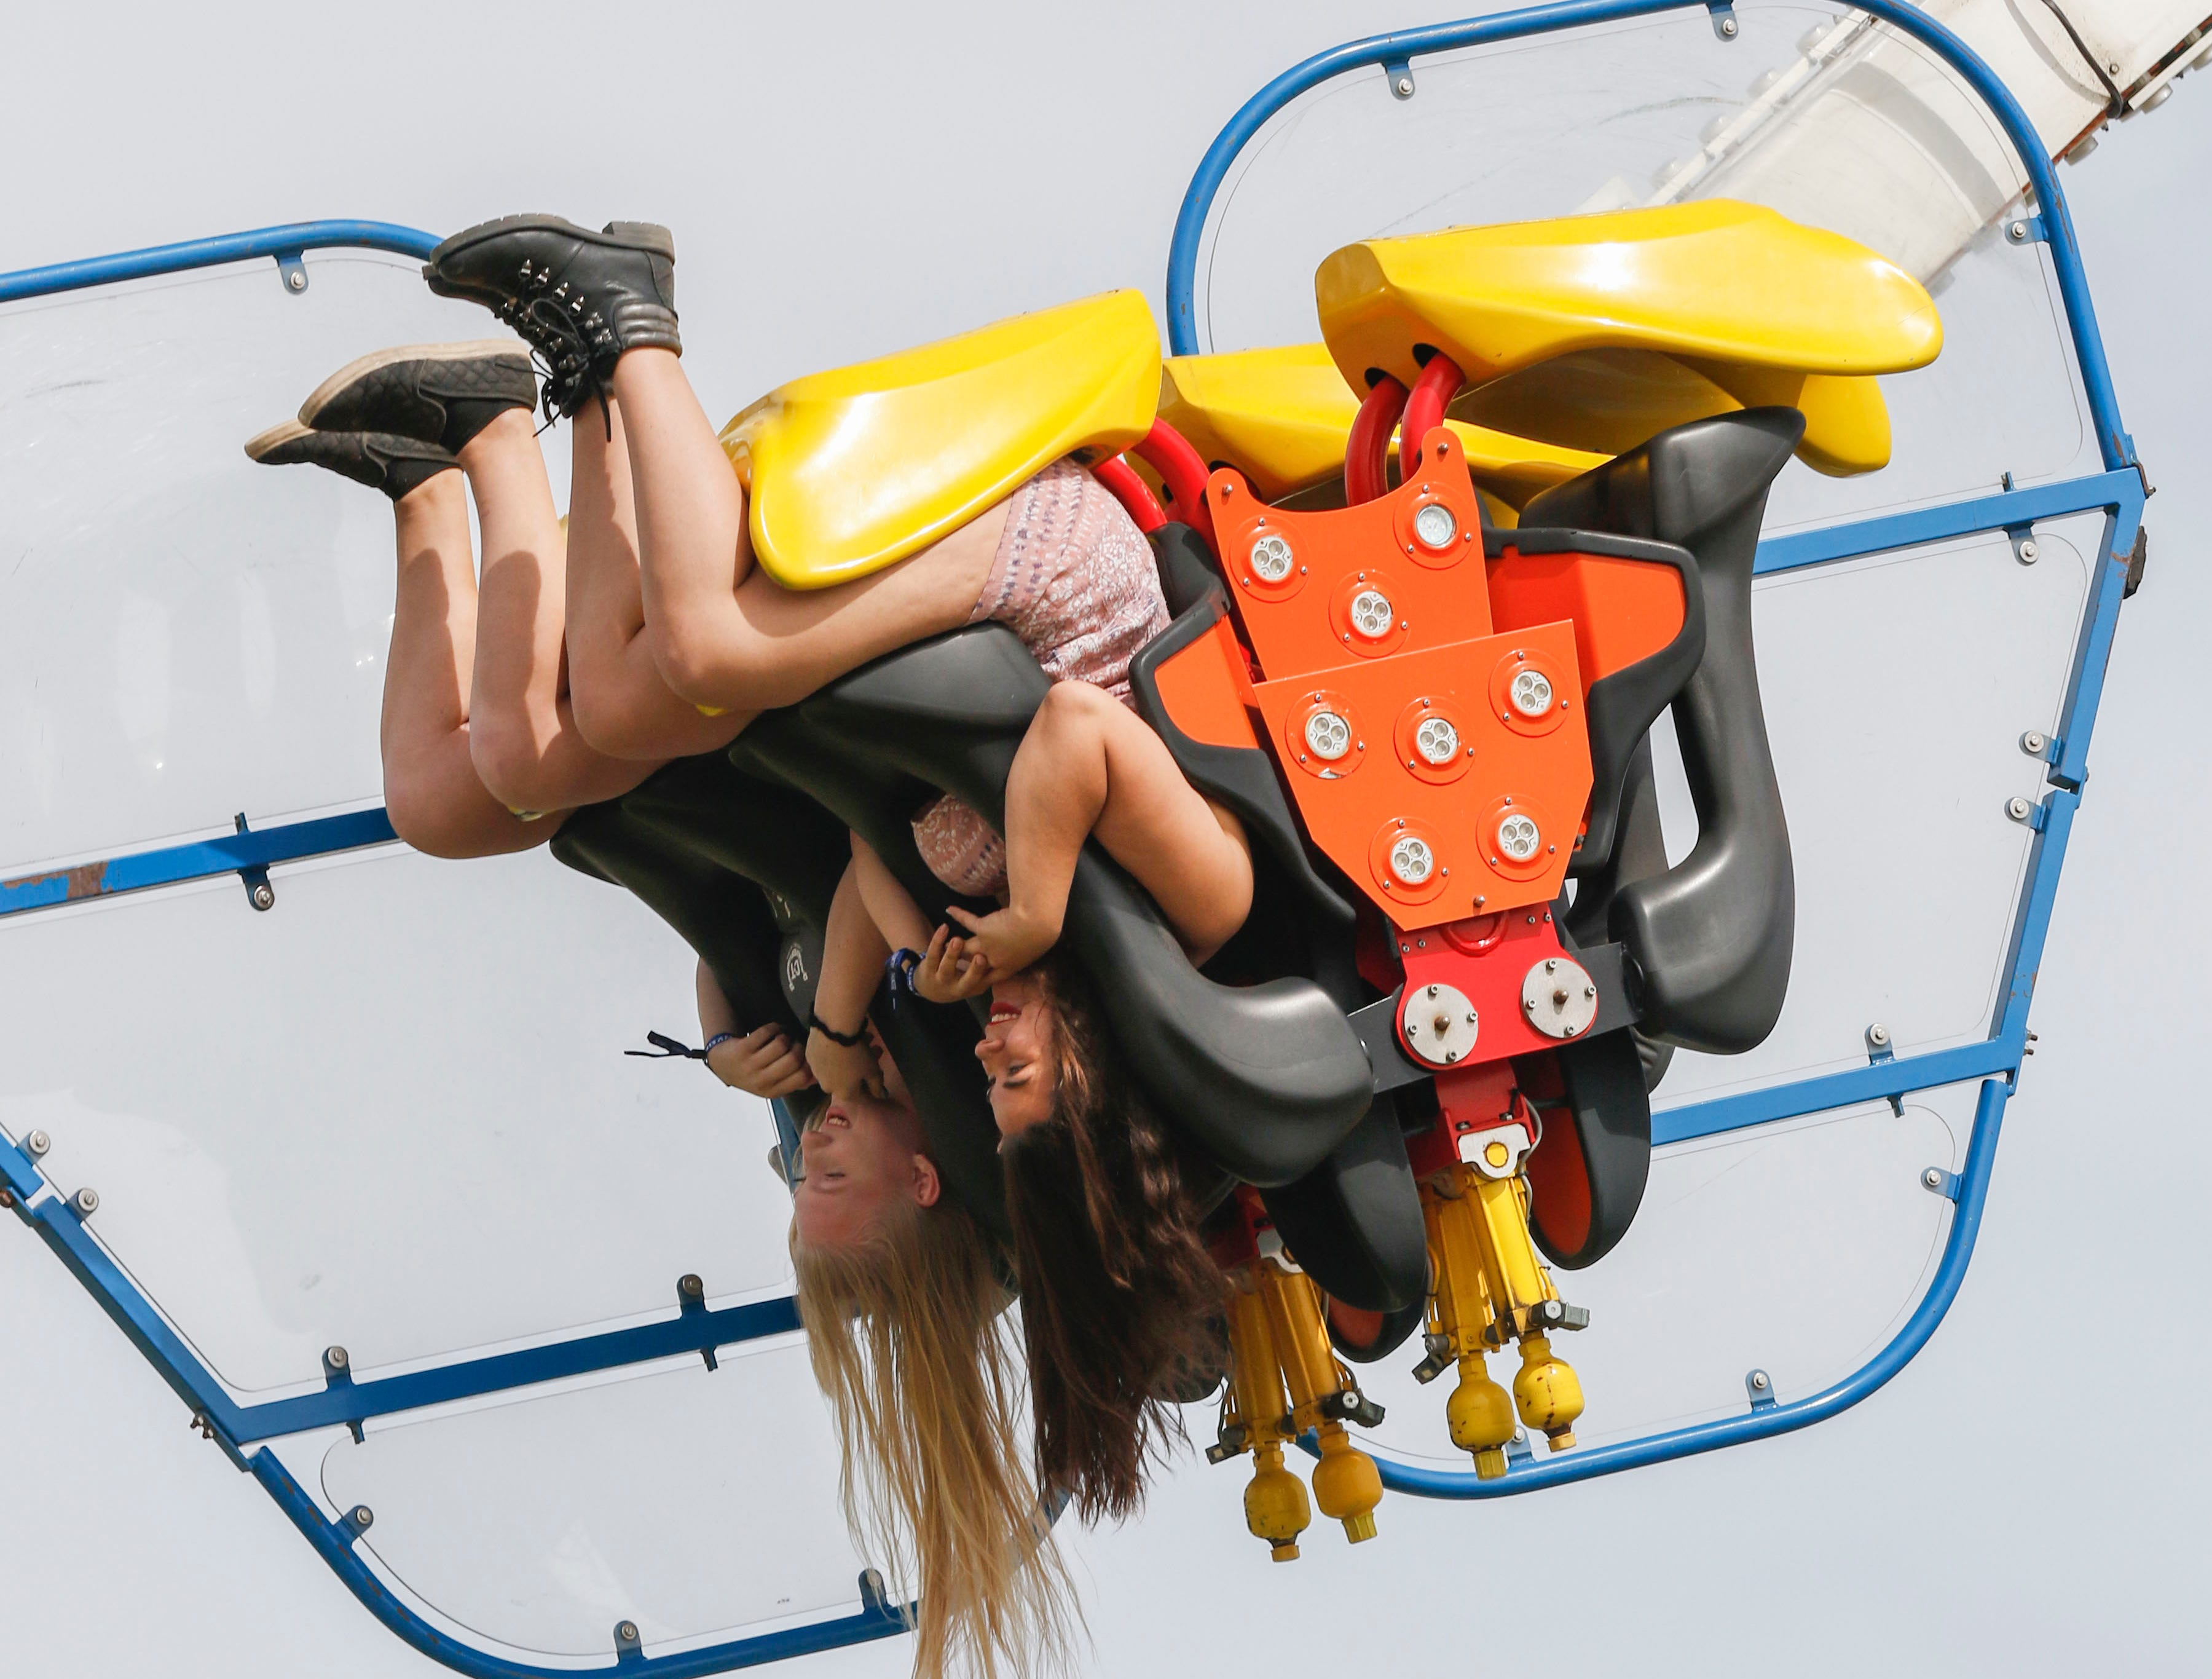 Goodyear's Jackie Steinman (left) and Chandler's Angel Ezell (right) have a hair-raising experience on Speed during Country Thunder Arizona on April 11, 2019, in Florence, Arizona.